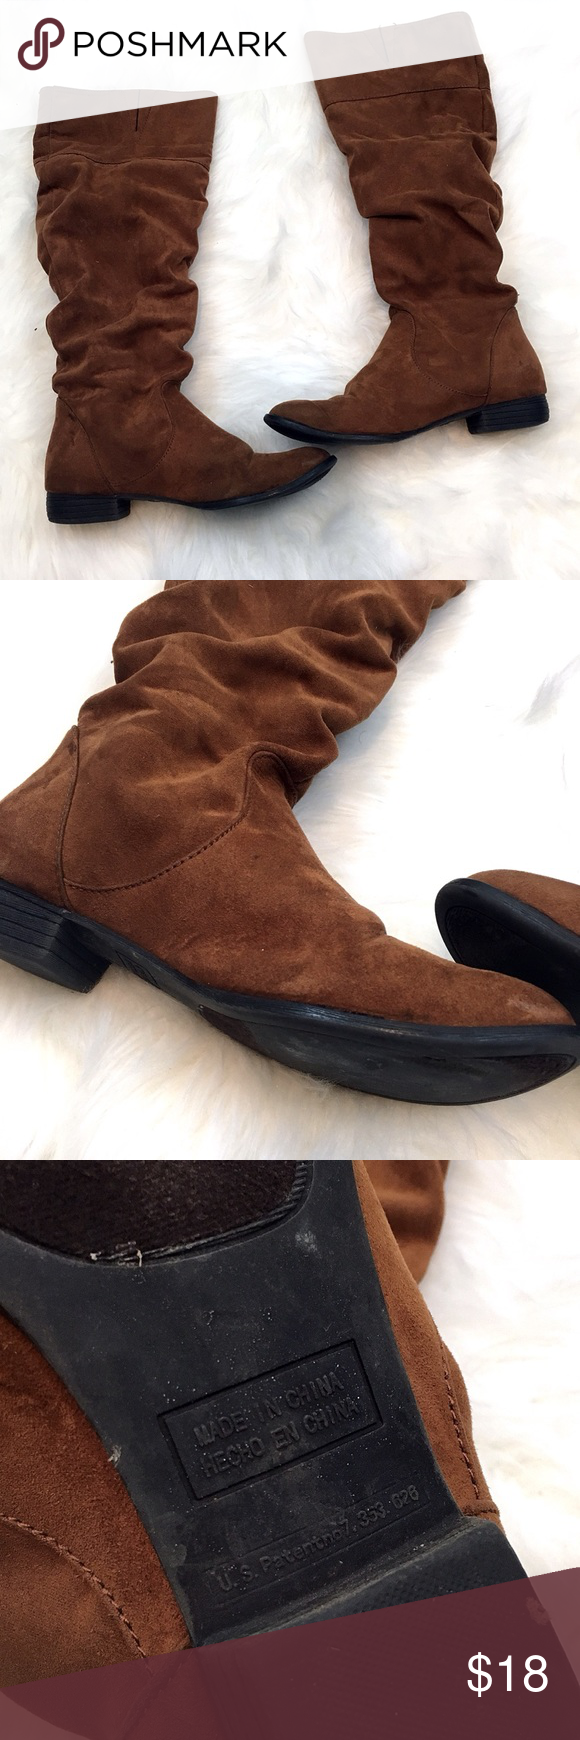 Forever 21 Brown Boots Size 7 - C7 Cute boots from F21 in orangish brown  color 8334e2b1aa